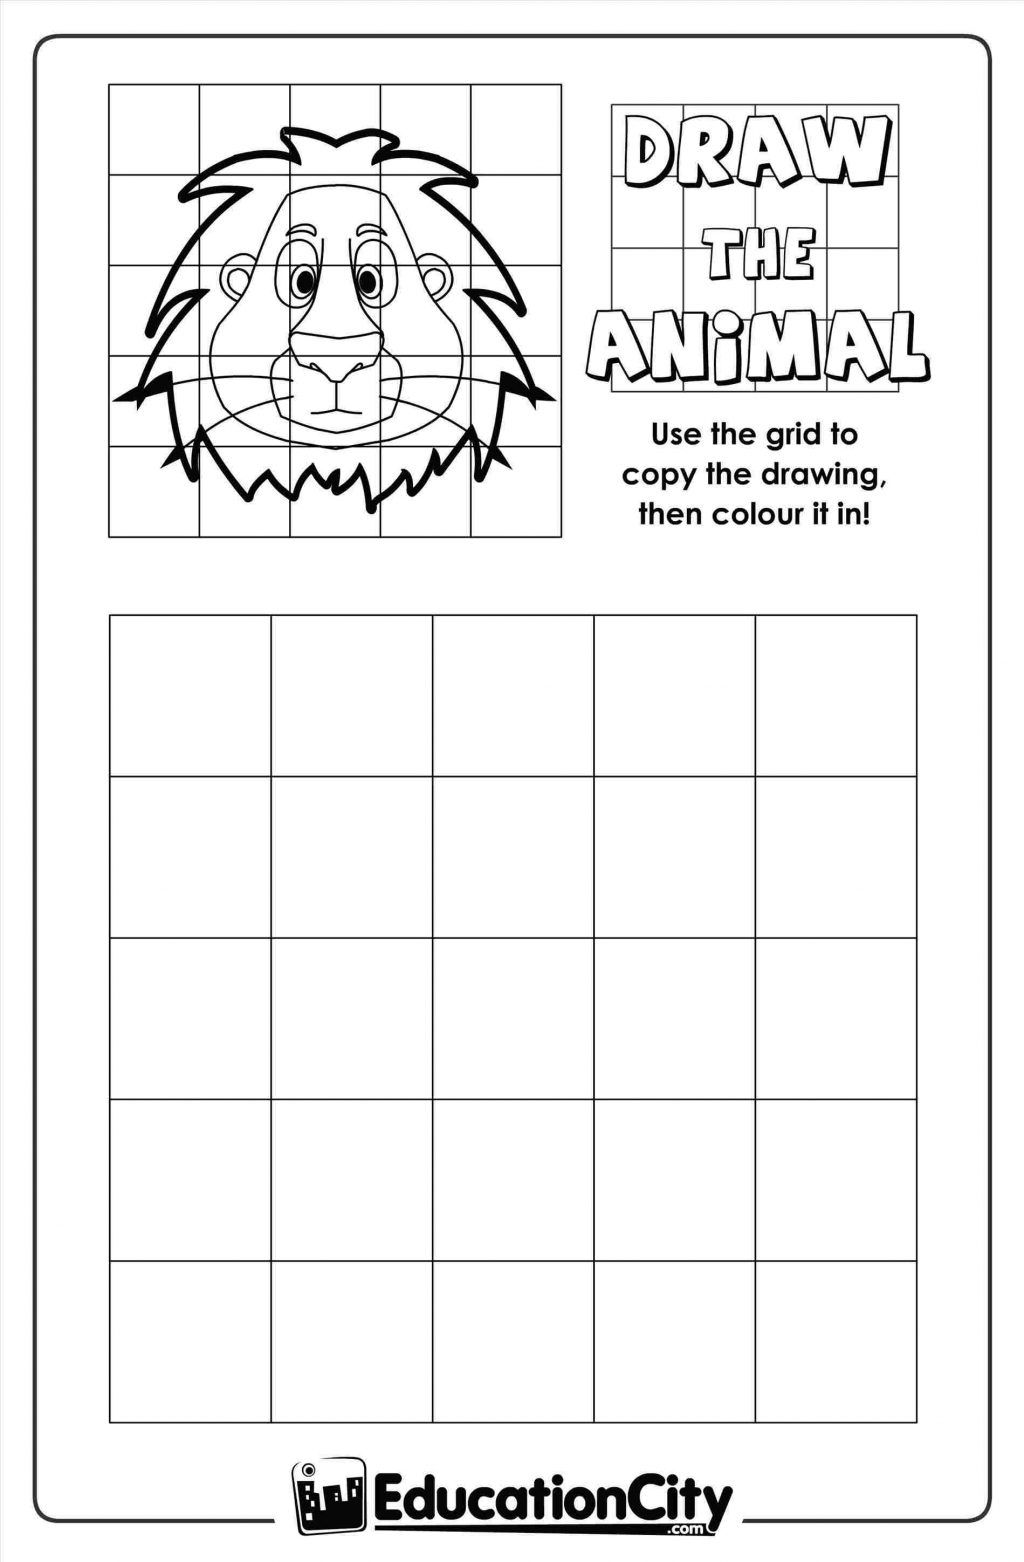 Worksheet Ideas Drawing Worksheets For Middle School Grid